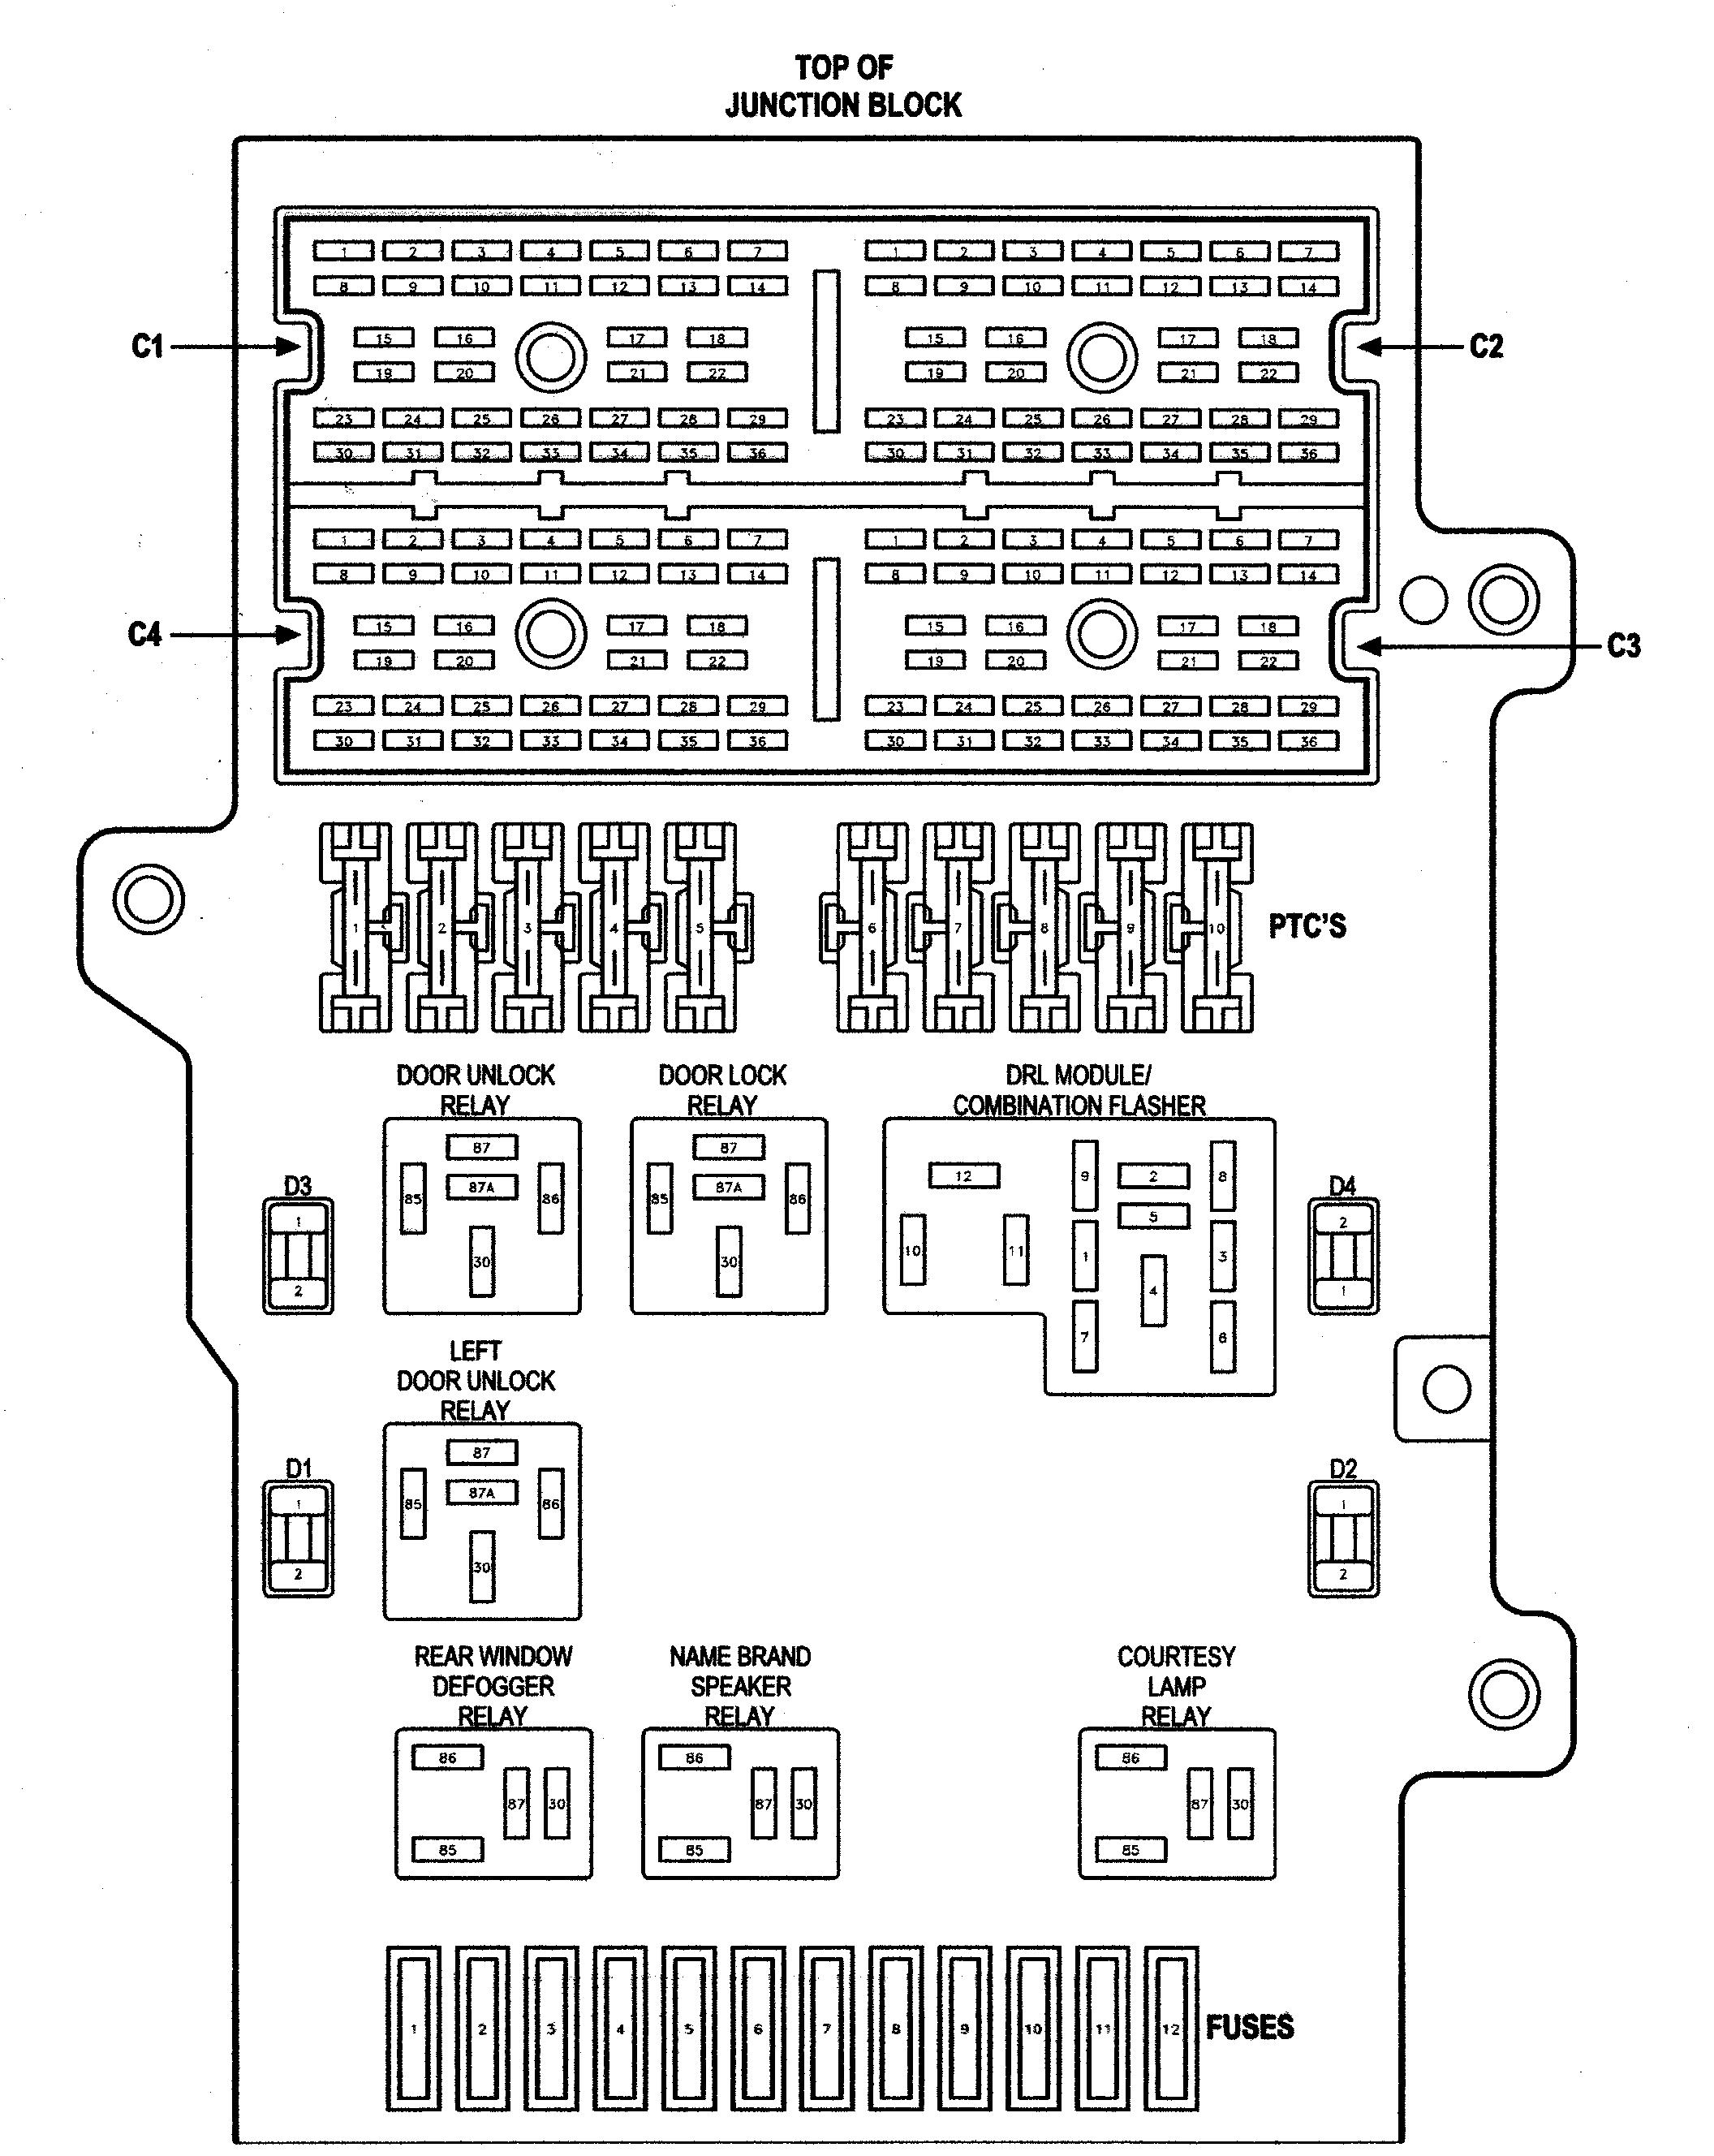 2001 chrysler town and country fuse panel diagram wiring diagram2001 chrysler voyager fuse box diagram wiring diagram gp 2001 chrysler town and country fuse panel diagram